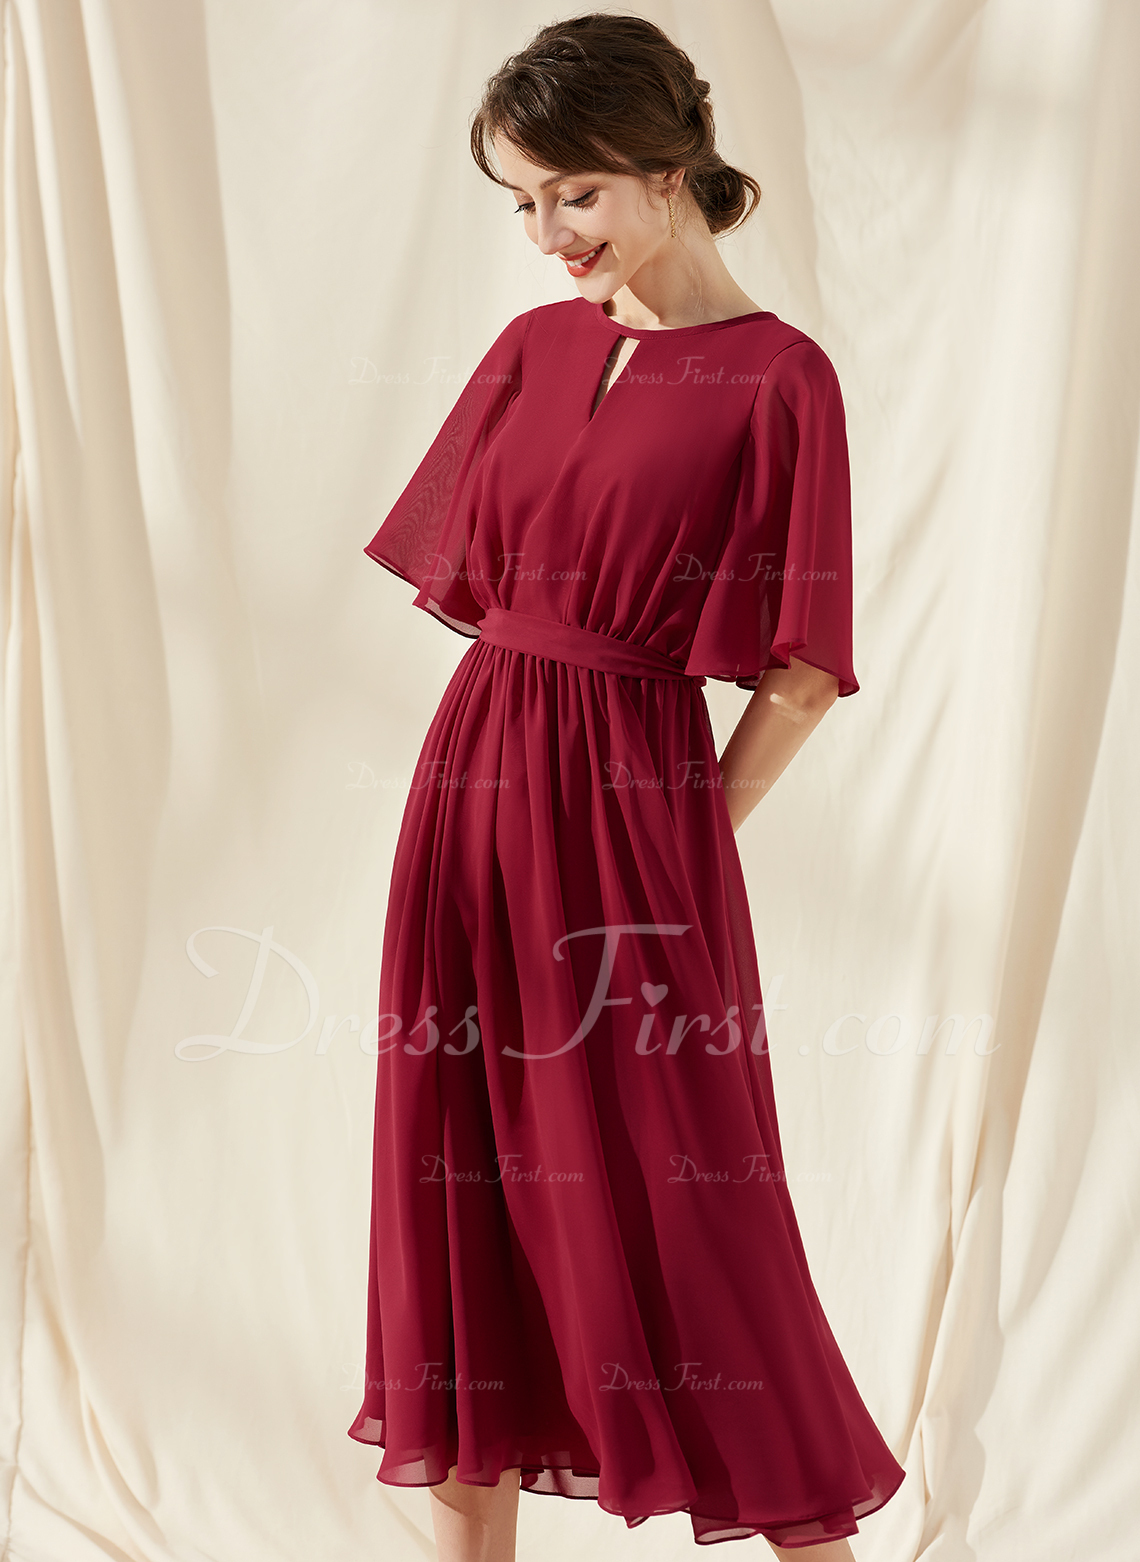 A-Line Scoop Neck Tea-Length Chiffon Cocktail Dress With Ruffle Bow(s)